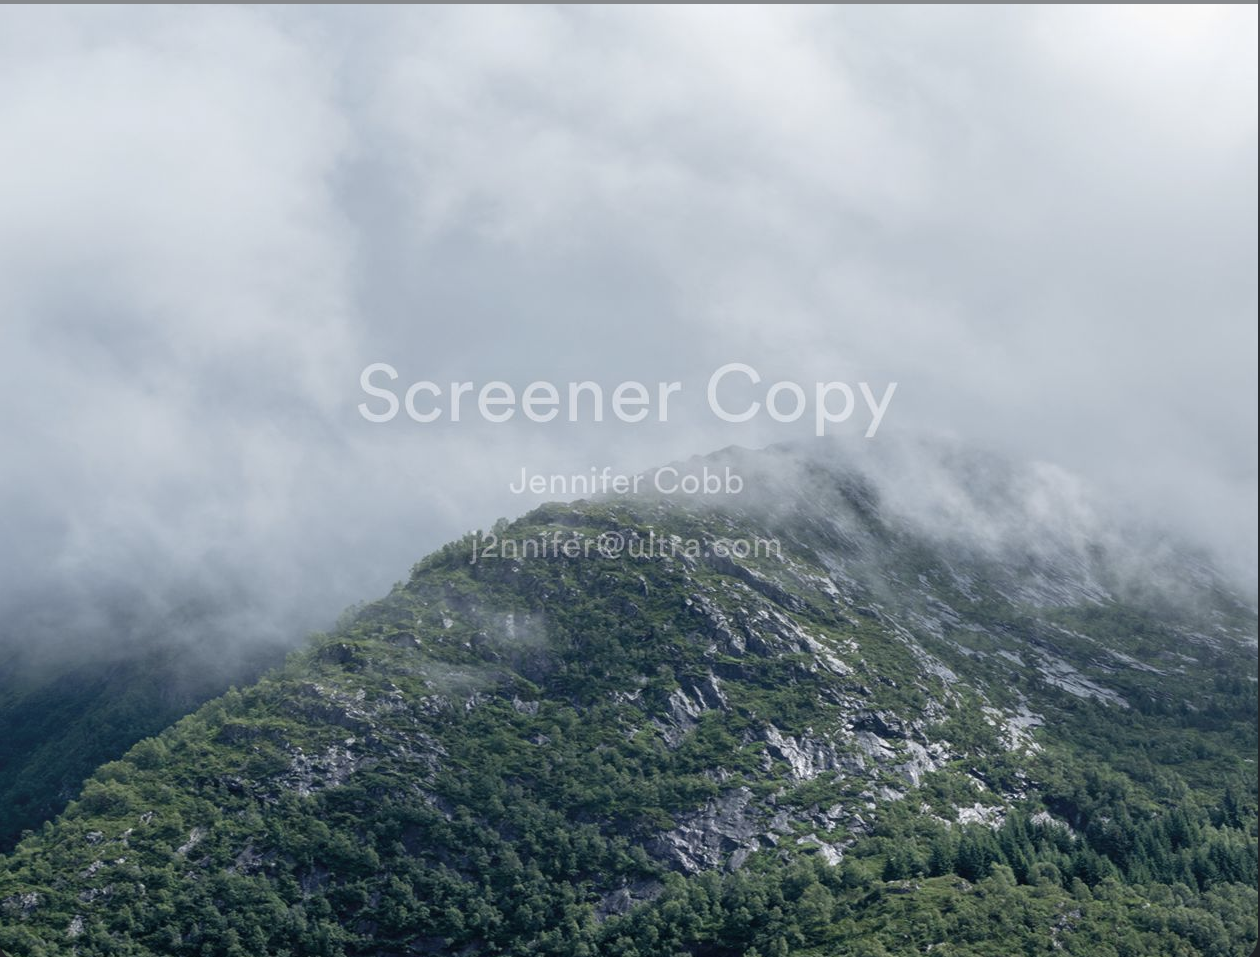 MediaSilo Demo - Watermark your pre-release content within 20 seconds of playback